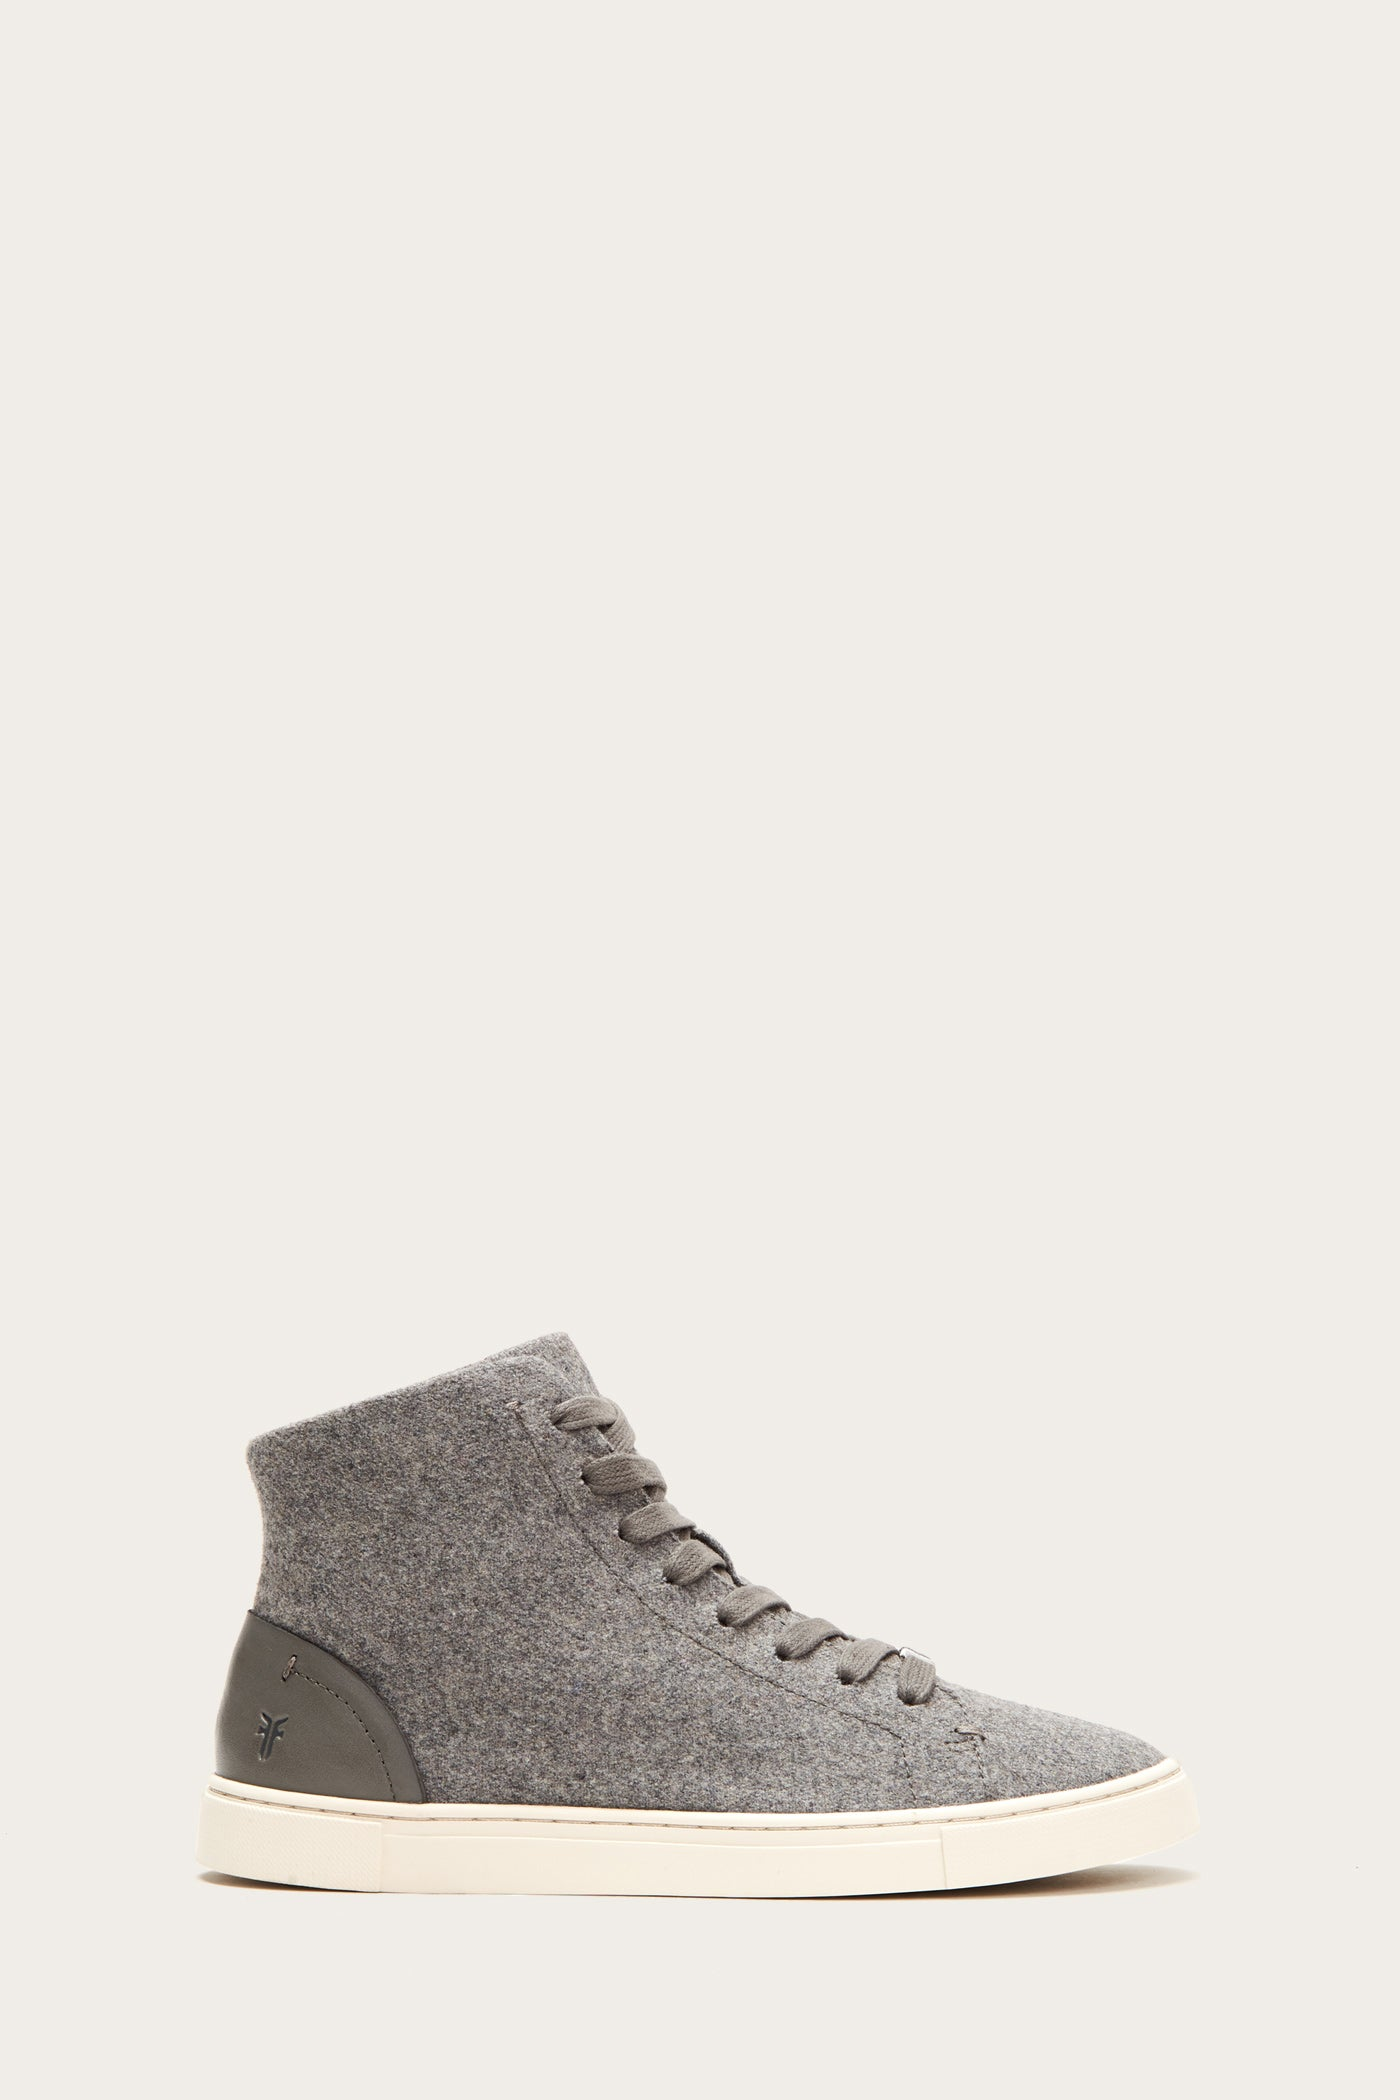 Ivy High Top | FRYE Since 1863